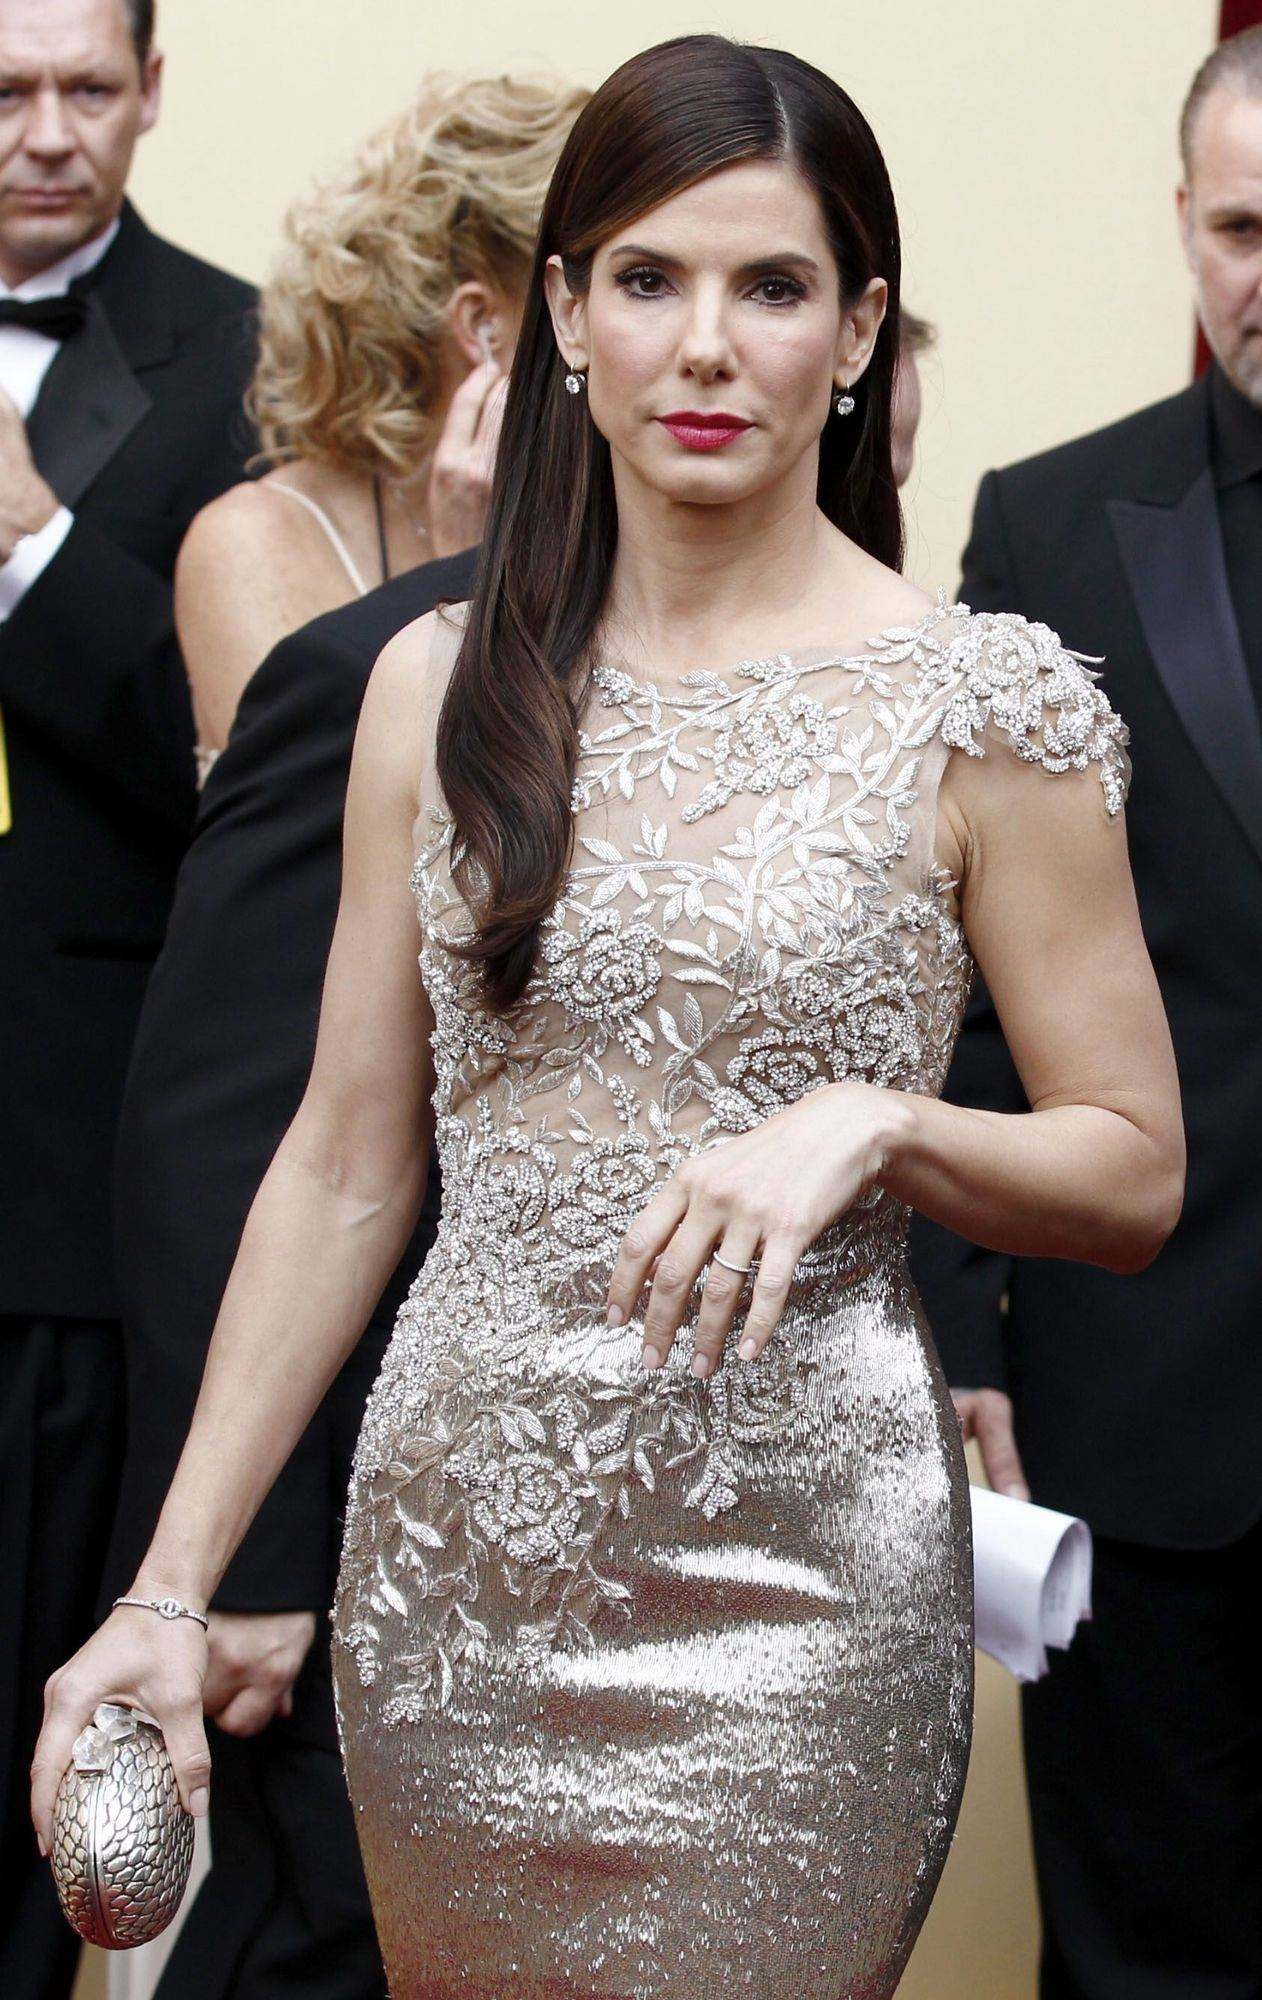 Sandra Bullock arrives during the 82nd Academy Awards on Sunday in Hollywood.